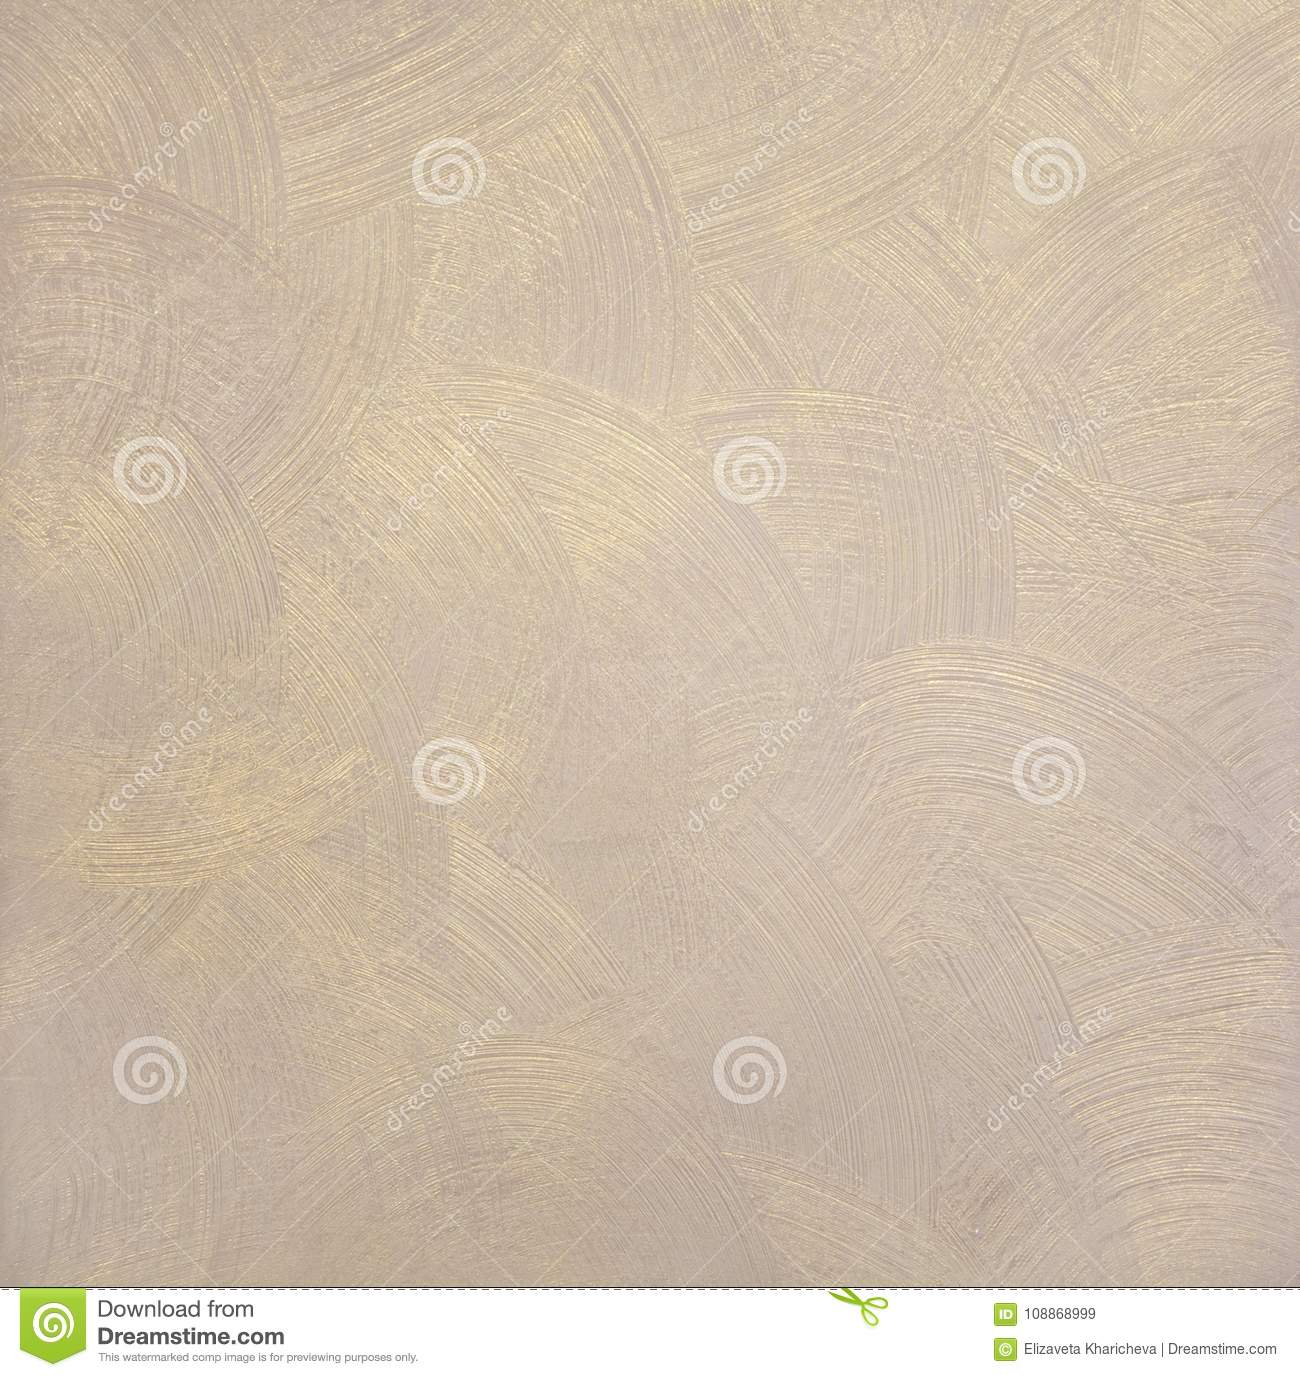 pearlescent texture of paint with round divorces beige color with